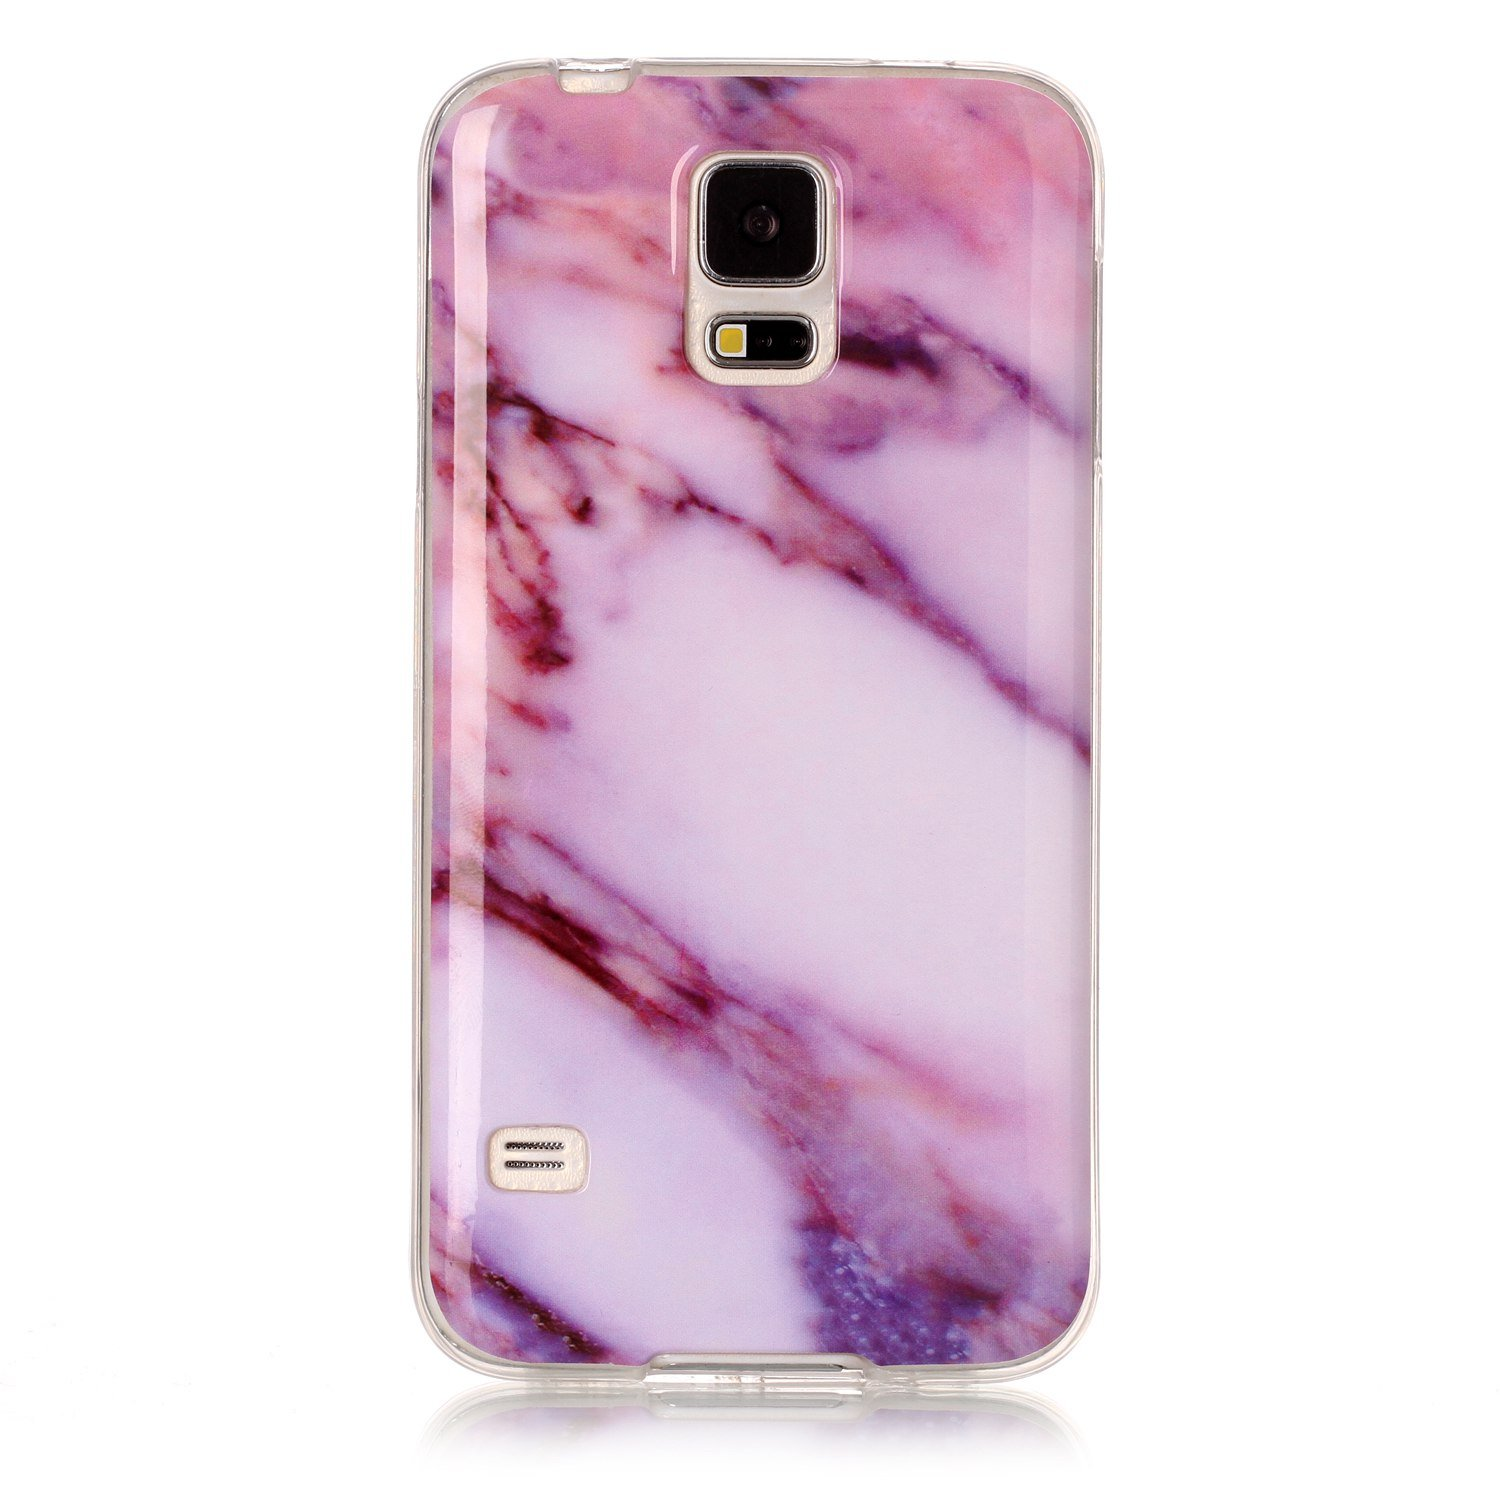 For Samsung Galaxy S5 Marble Case White,OYIME Unique Luxury Glitter Colorful Plating Pattern Skin Design Clear Silicone Rubber Slim Fit Ultra Thin Protective Back Cover Glossy Soft Gel TPU Shell Shockproof Drop Protection Protective Transparent Bumper and